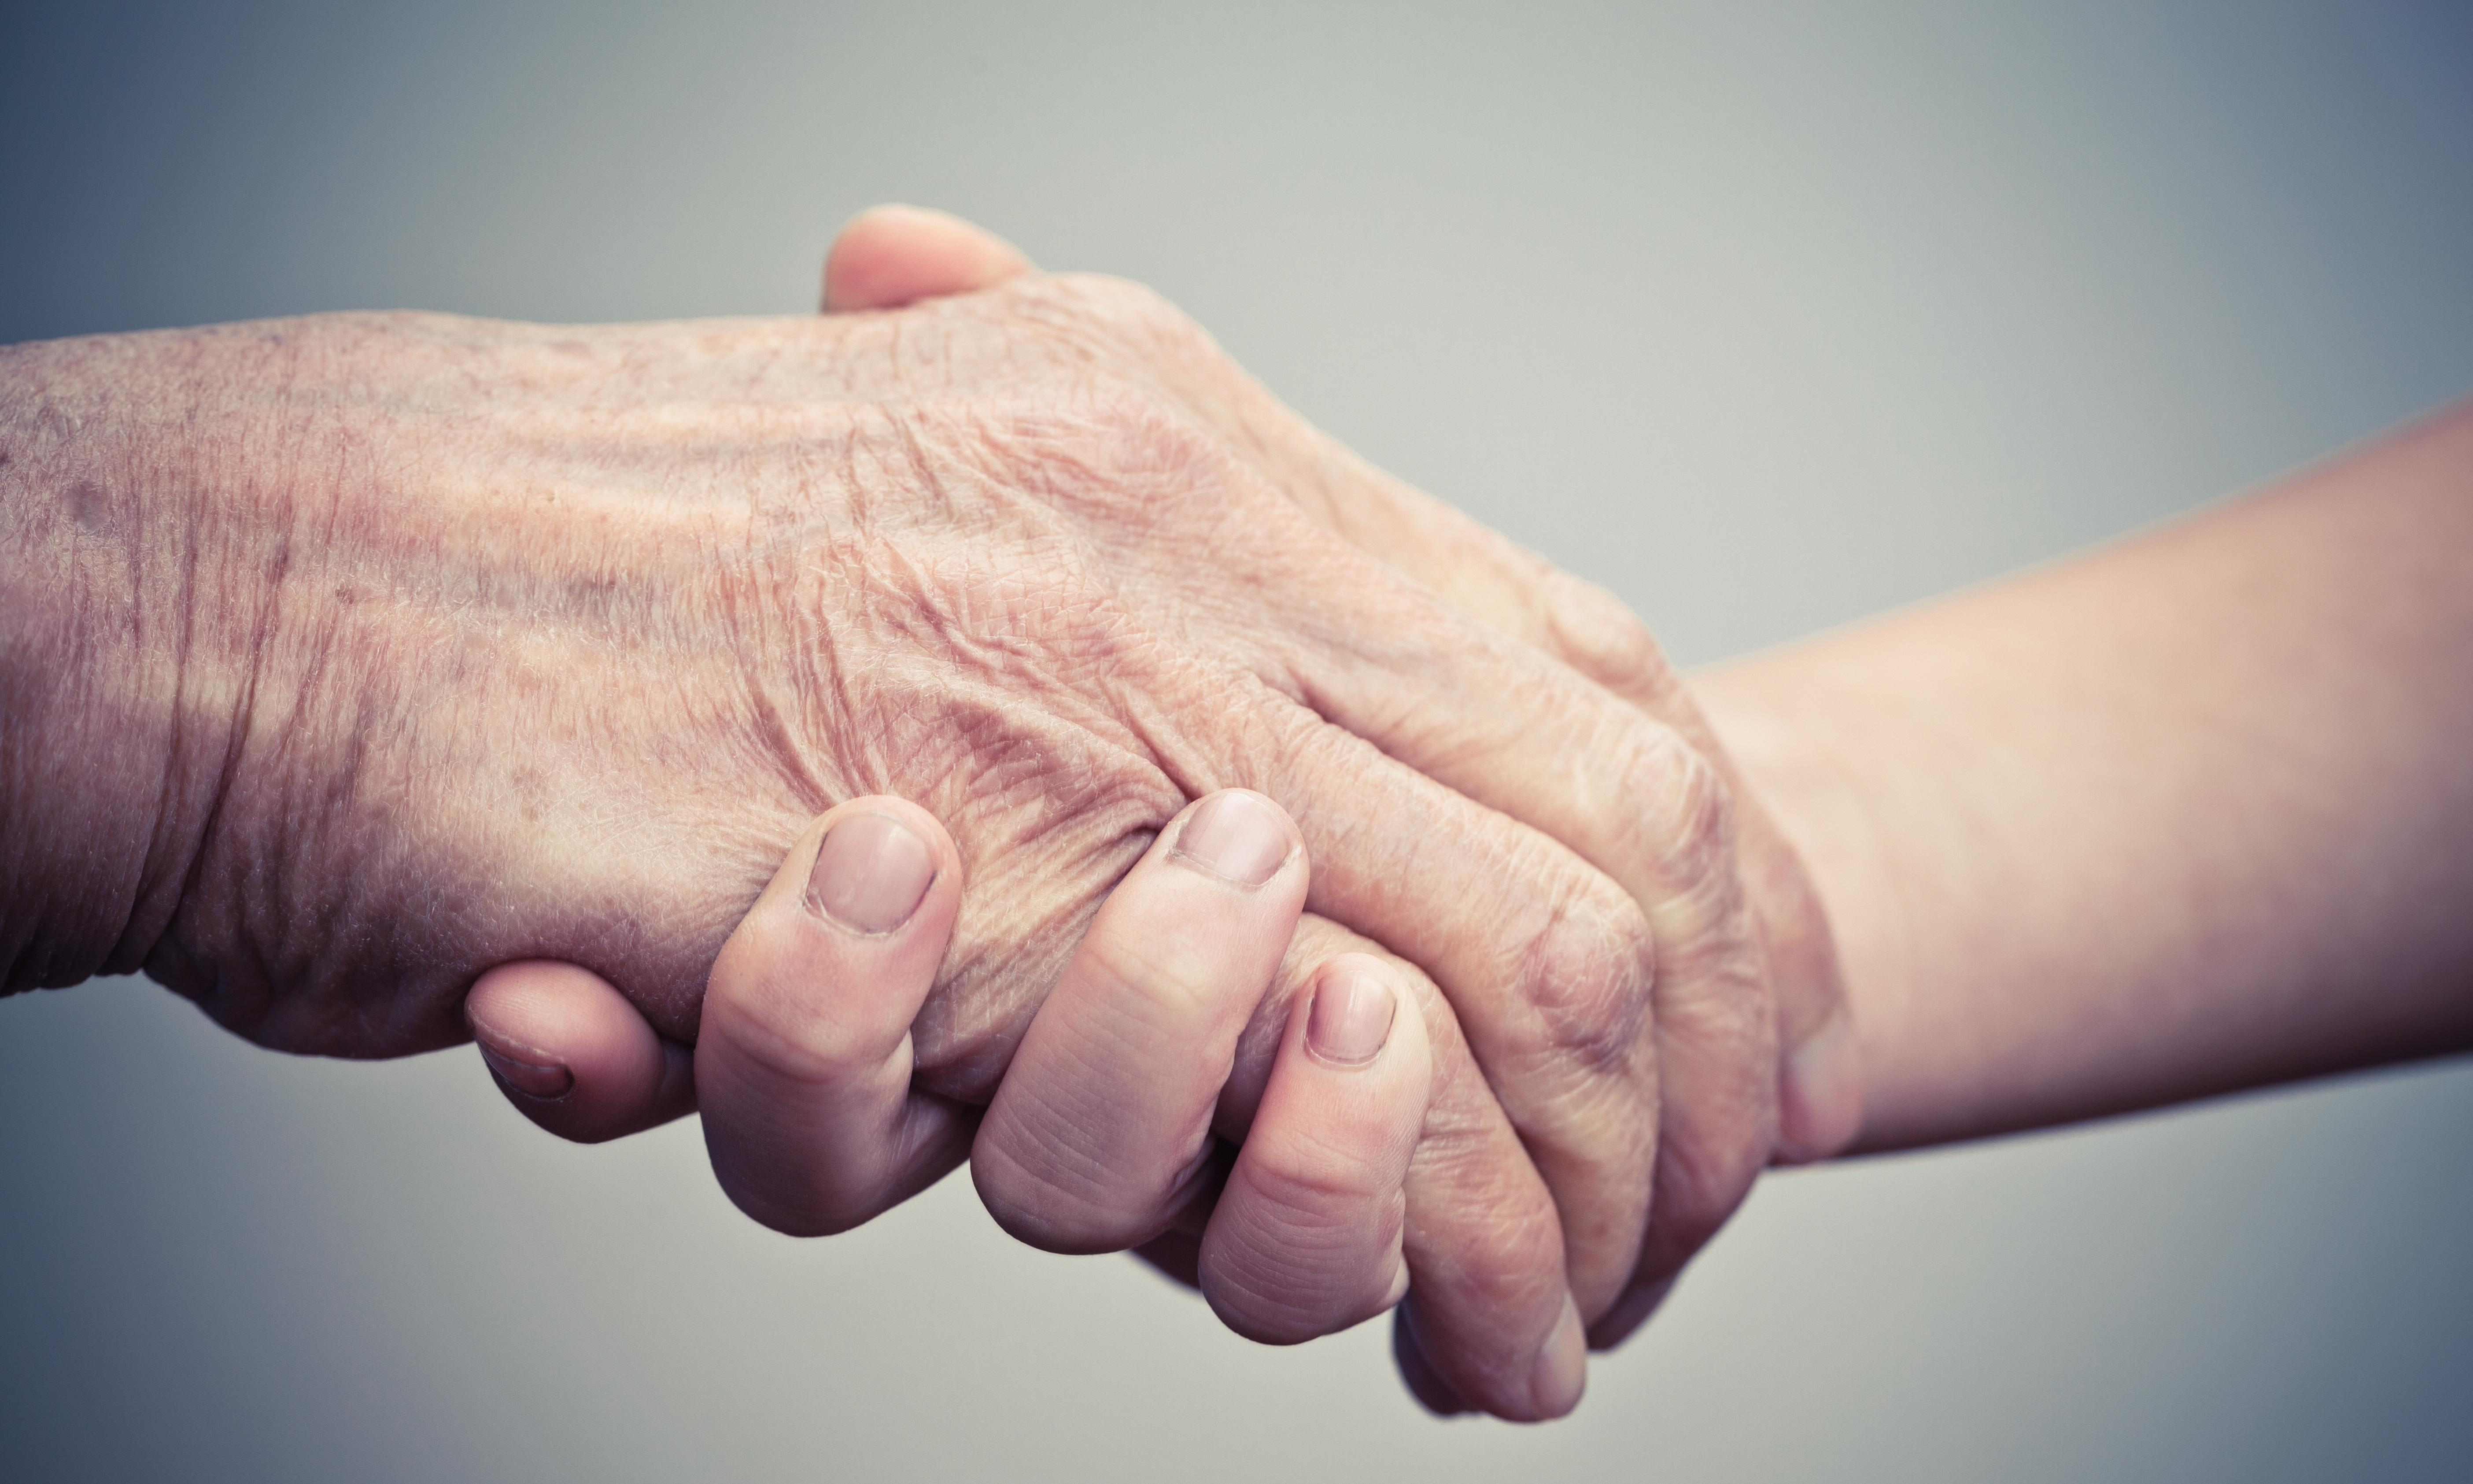 Top 10 caregivers in fiction